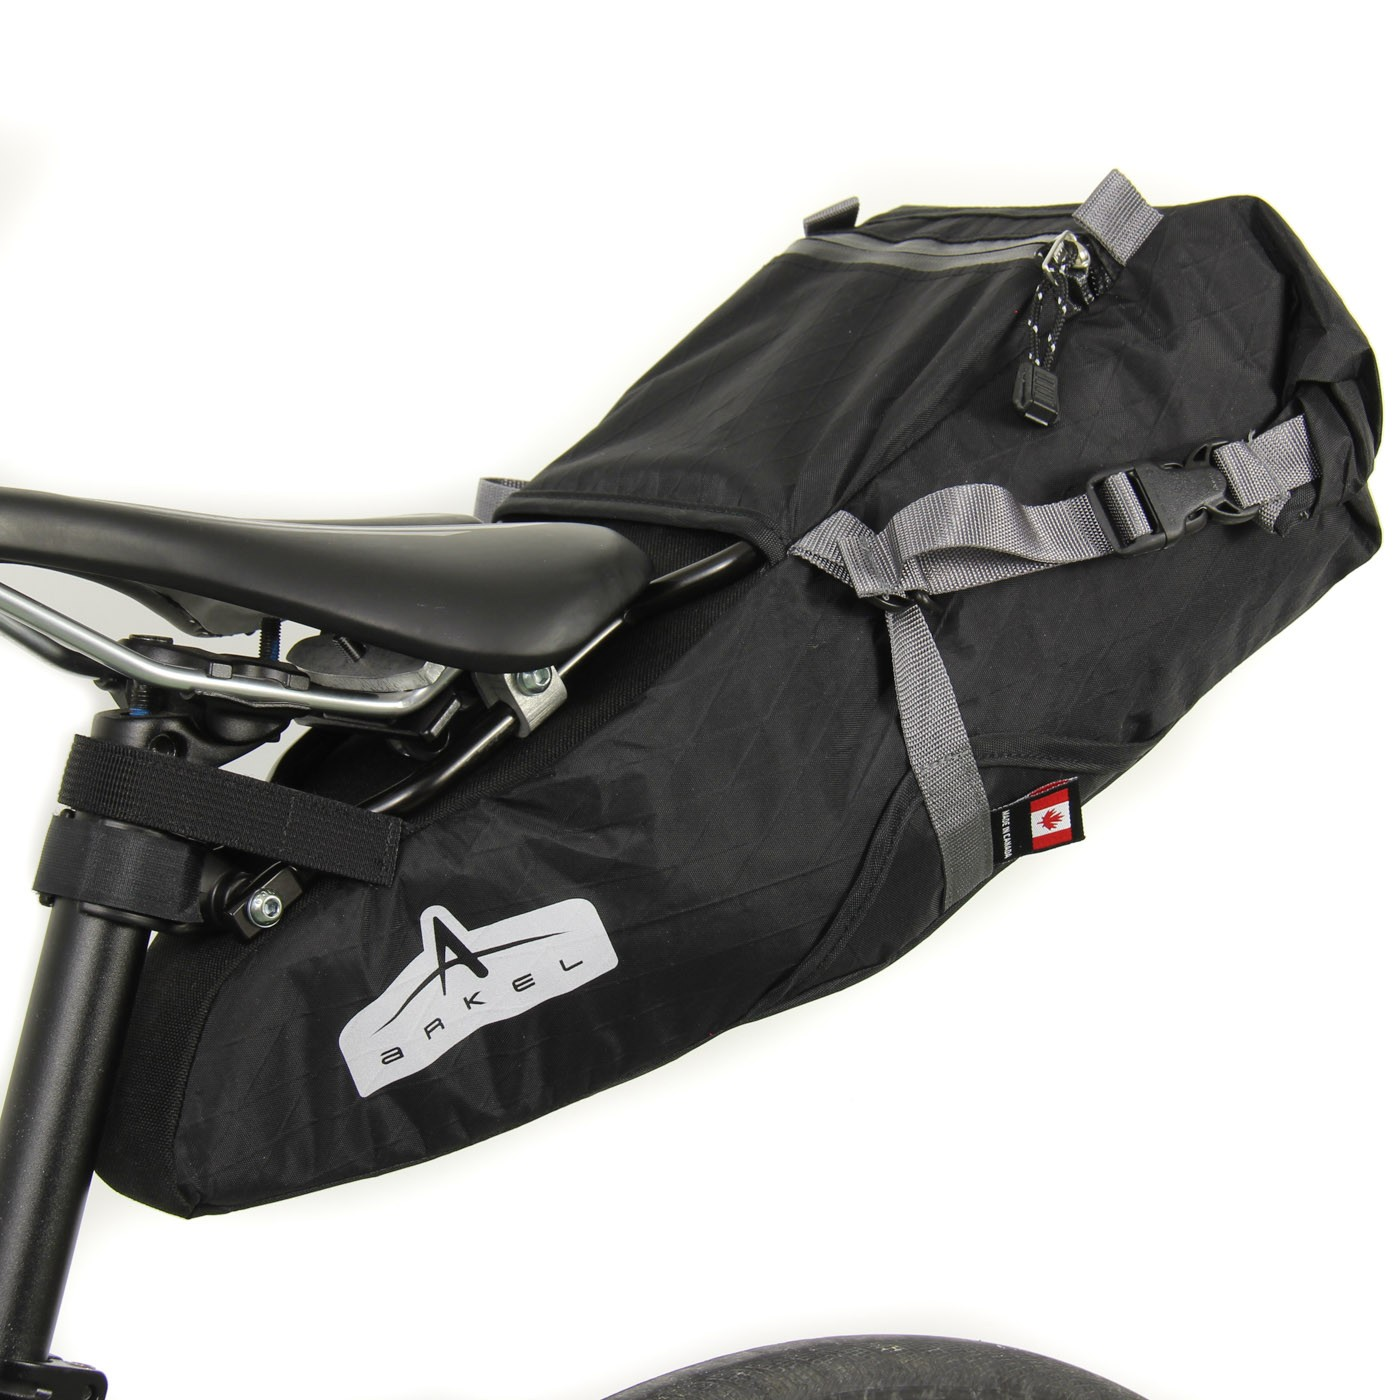 Bikeng Seat Bag Seatpacker 9 Model By Arkel